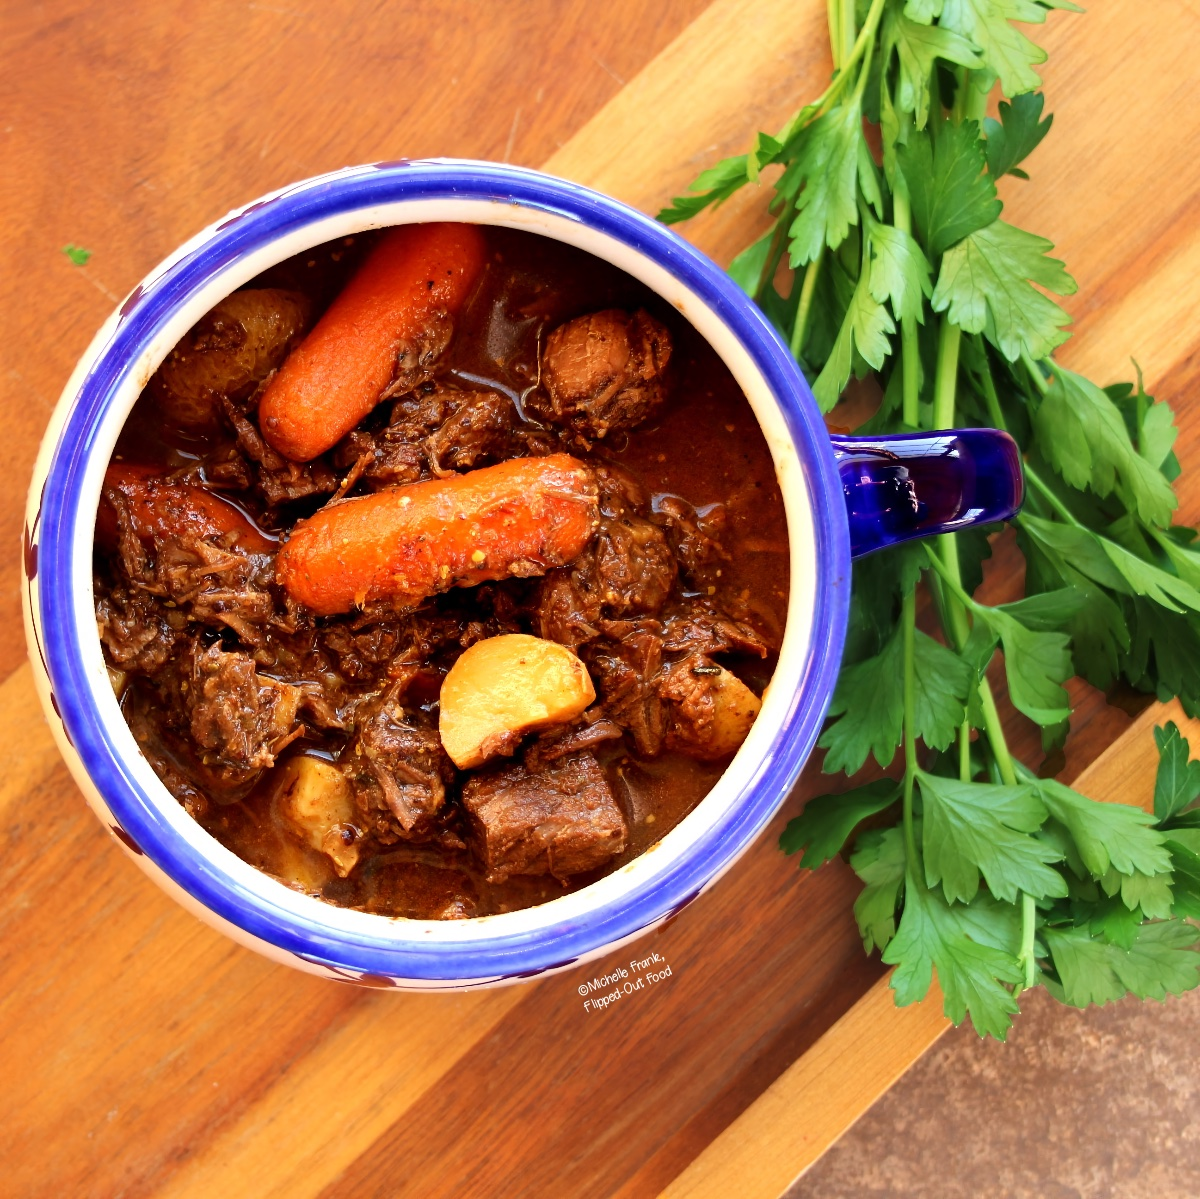 Easy Soups for Fall: Make-Ahead Irish Guinness Stew